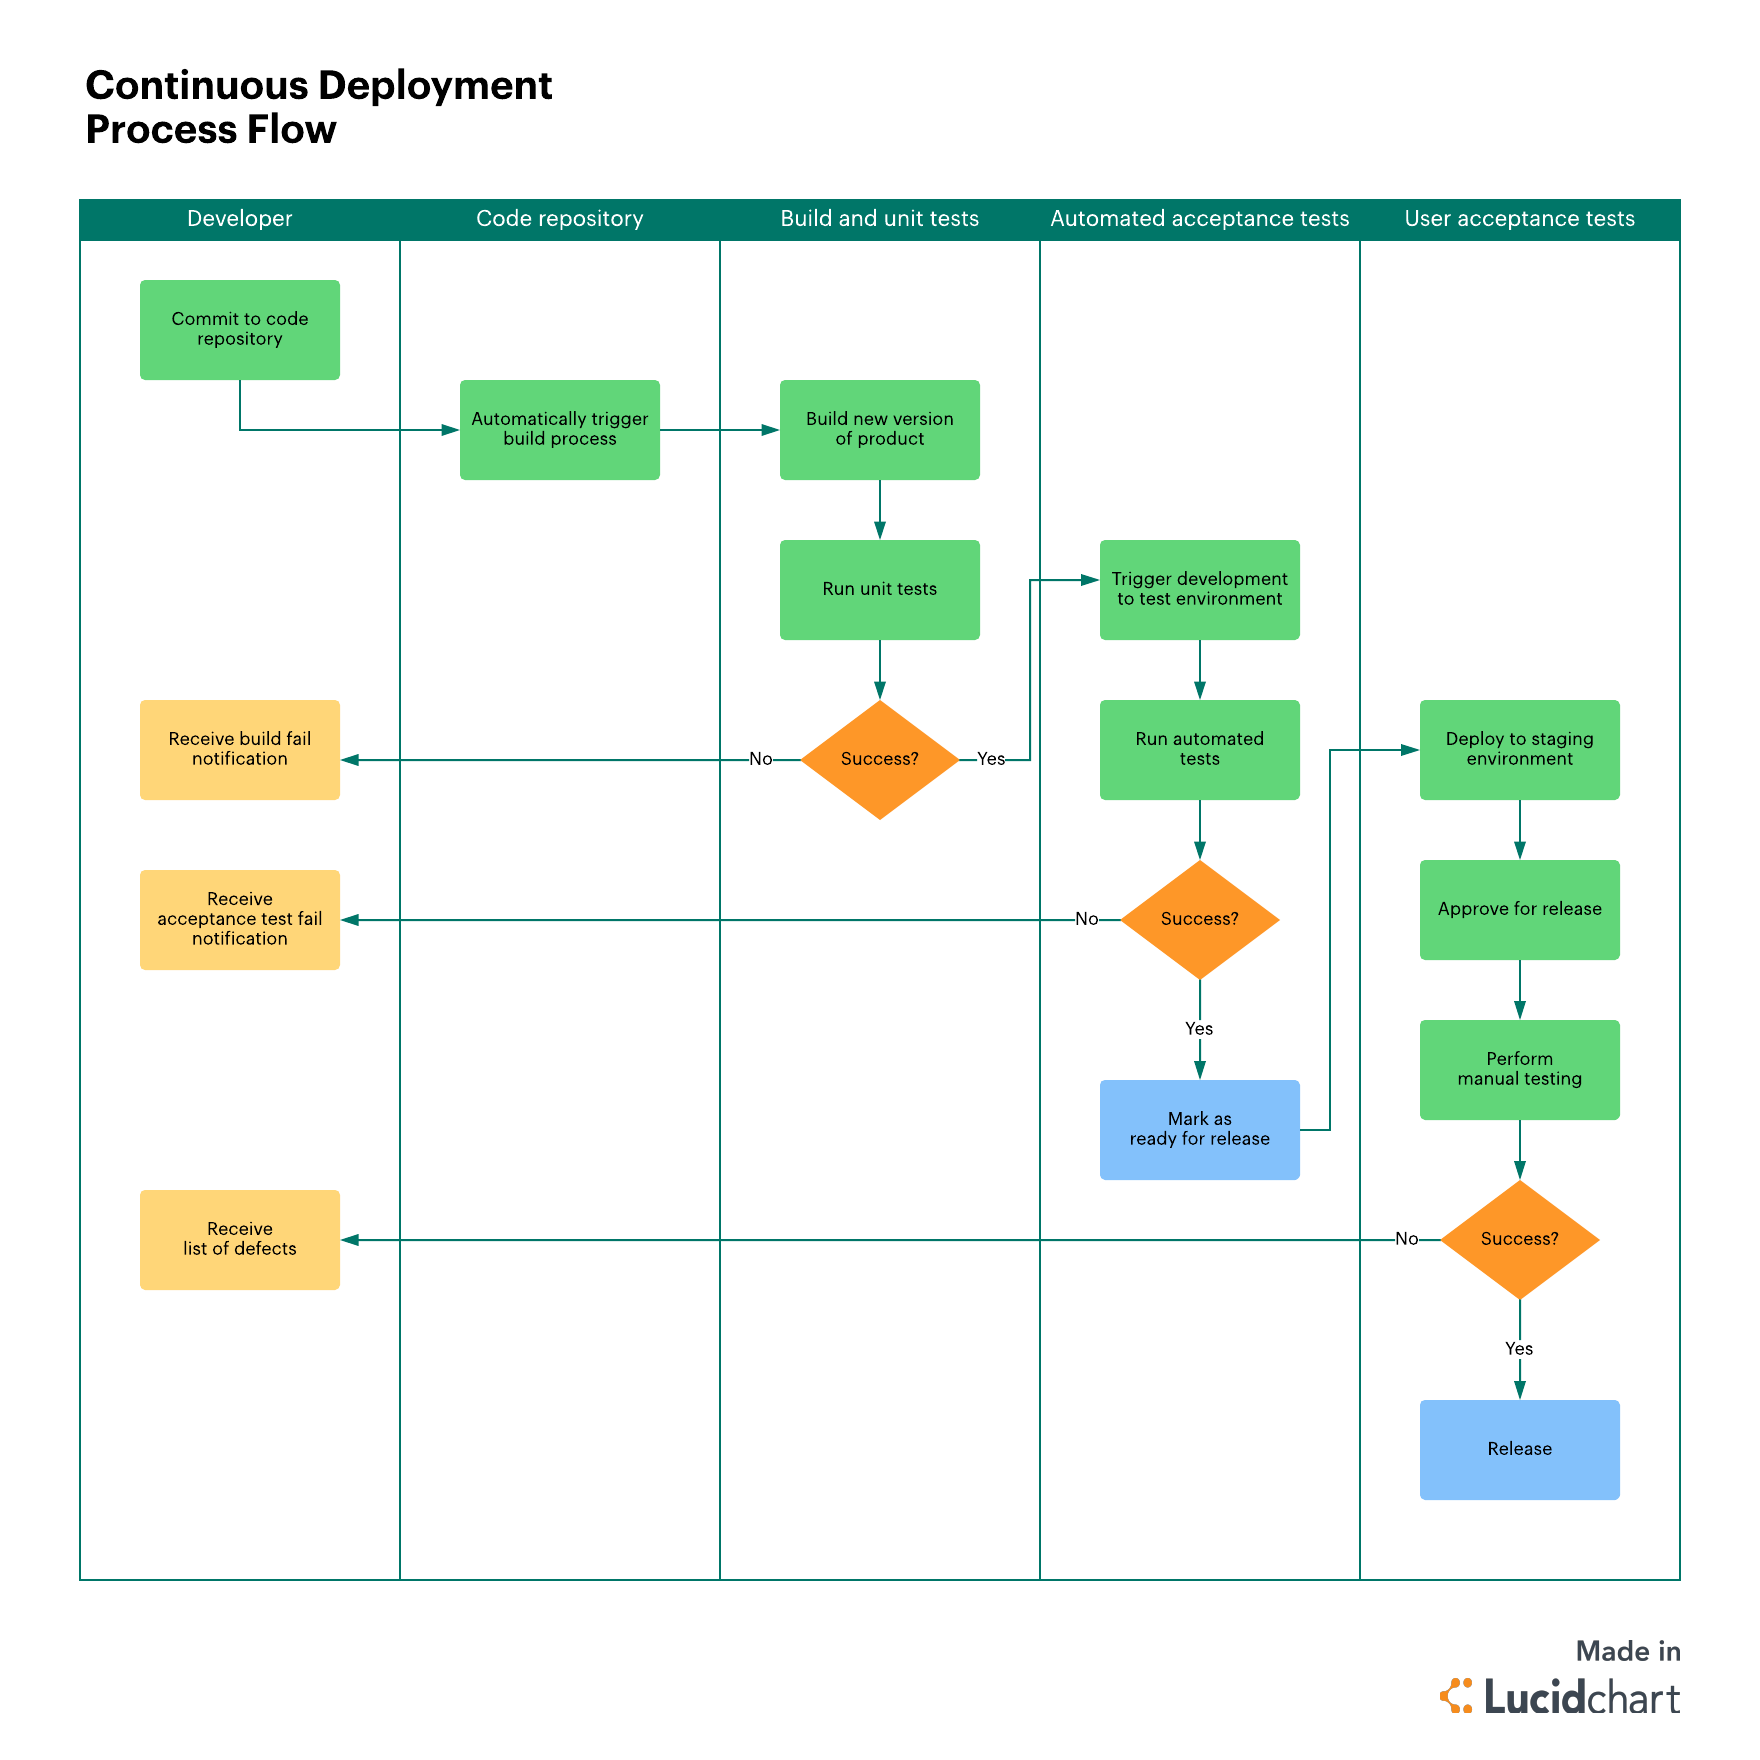 process flow chart 101 best practices for continuous deployment lucidchart blog  continuous deployment